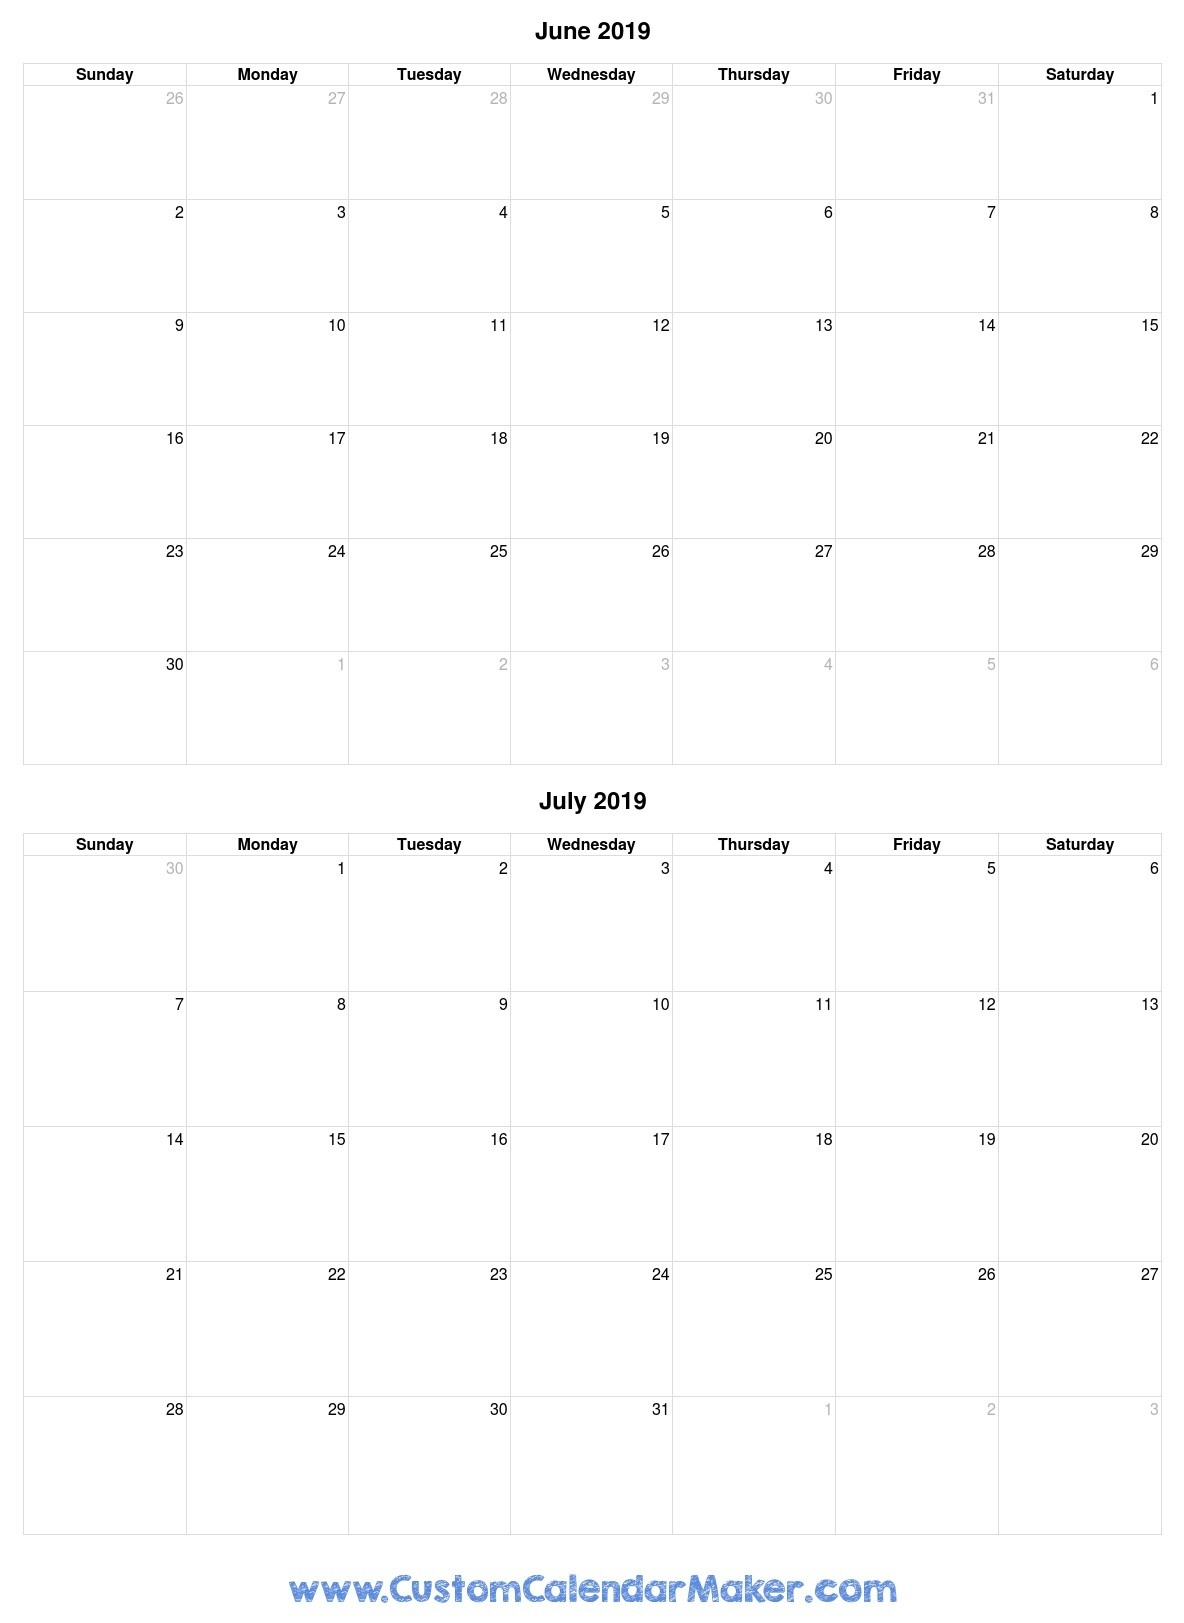 June And July 2019 Free Printable Calendar Template-Printable Blank Calendars June July August